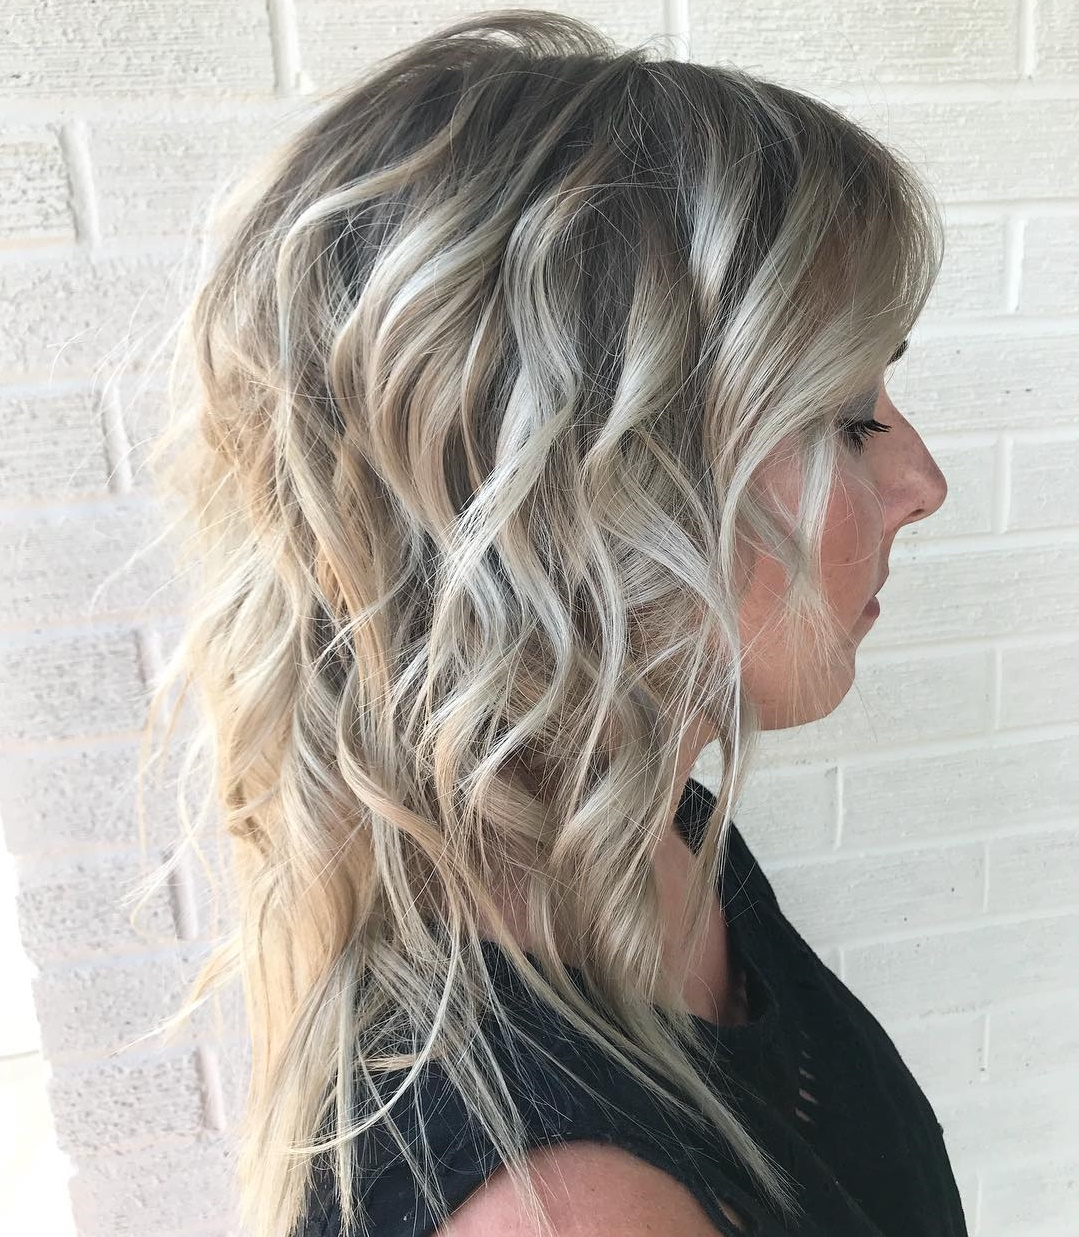 Shoulder Length Shag with Curls